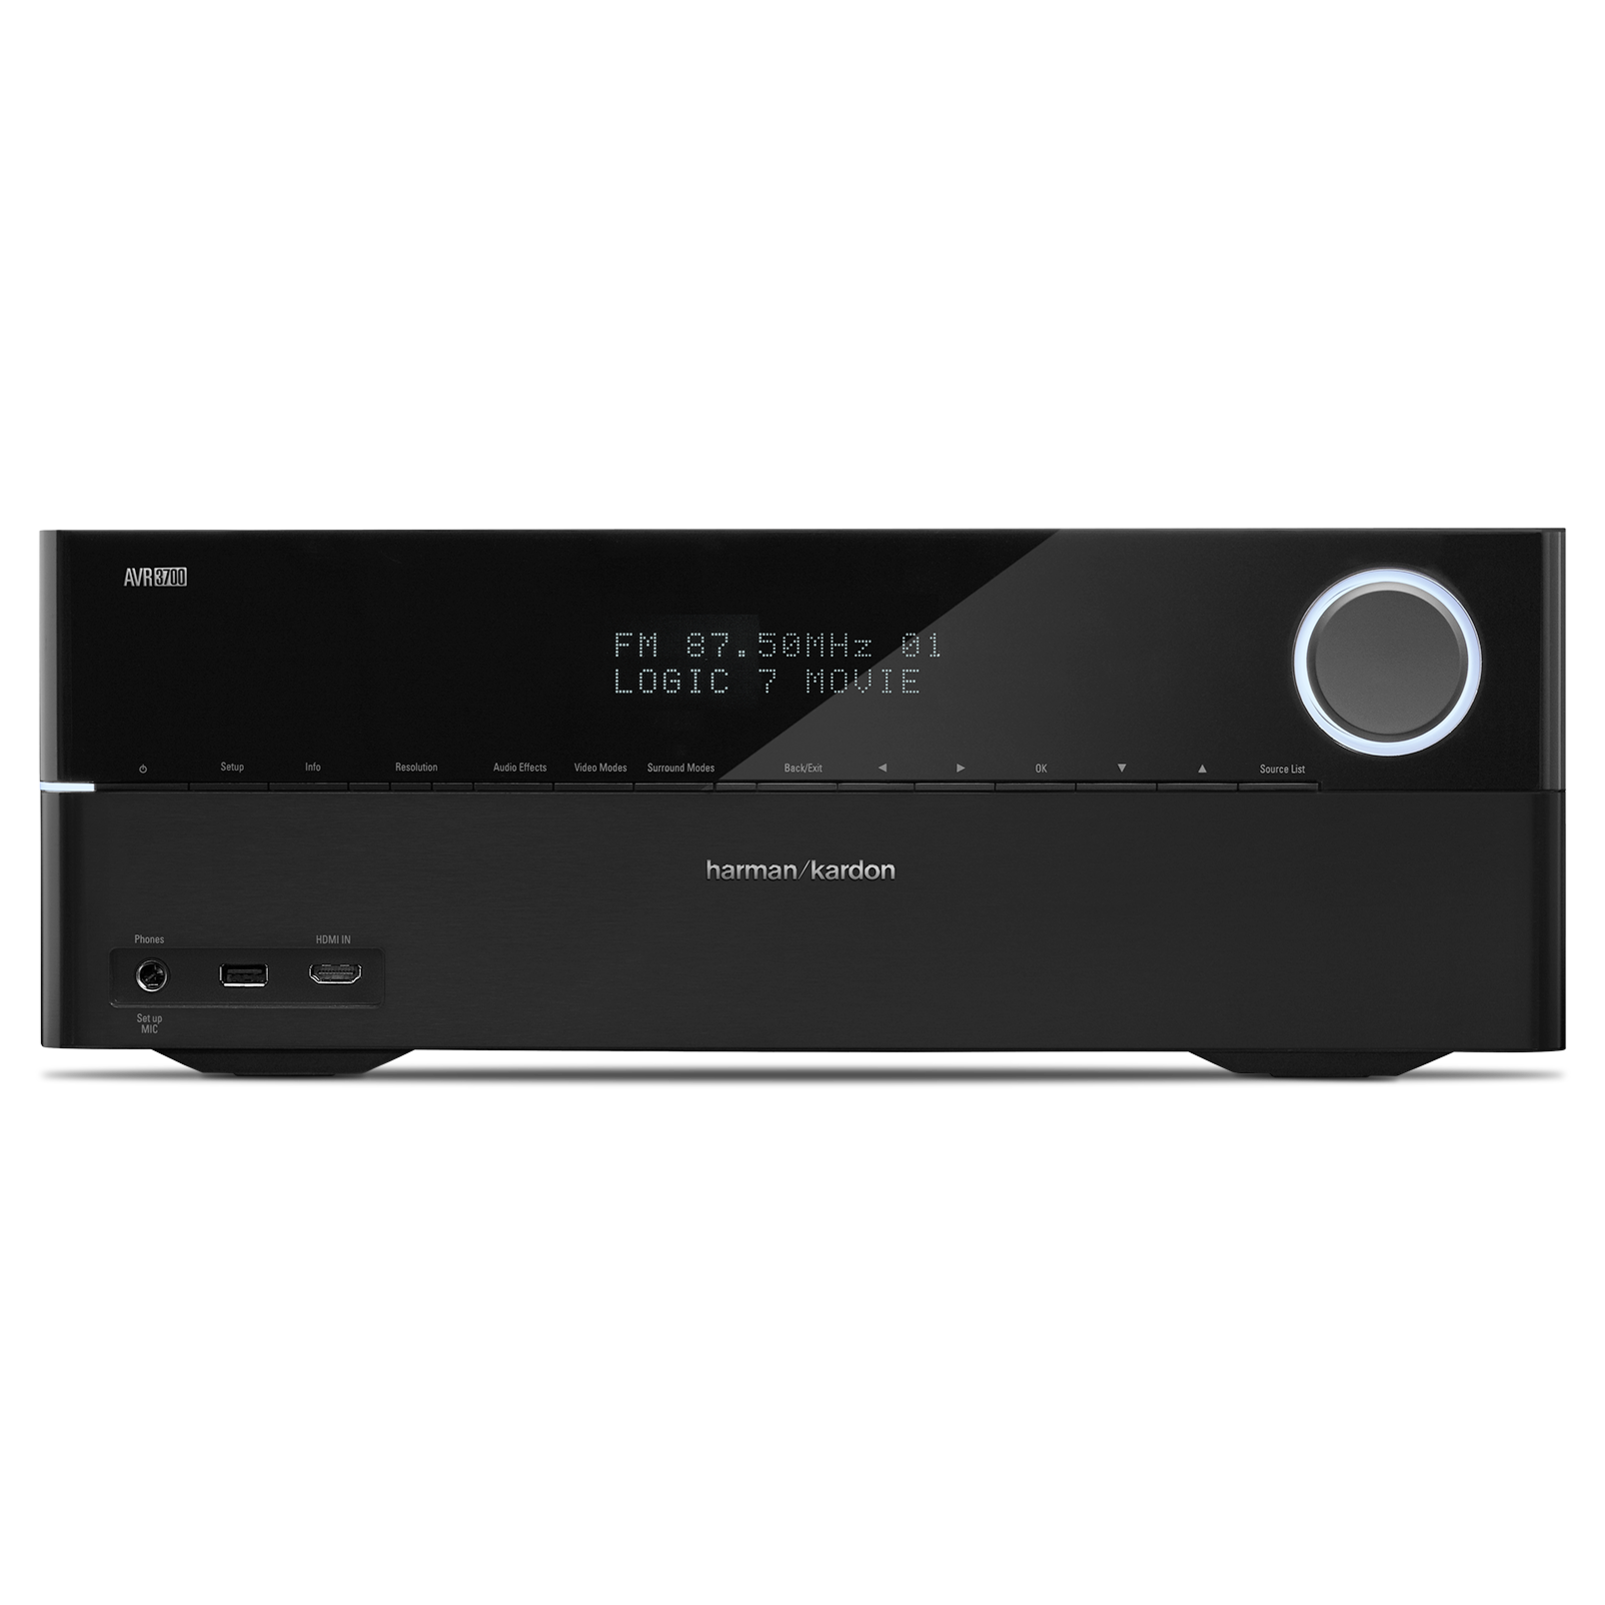 AVR 3700 - Black - Audio/Video Receiver With Dolby TrueHD & DTS-HD Master Audio & HDMI 1.4 (125 watts x 7) 7.2 - Front